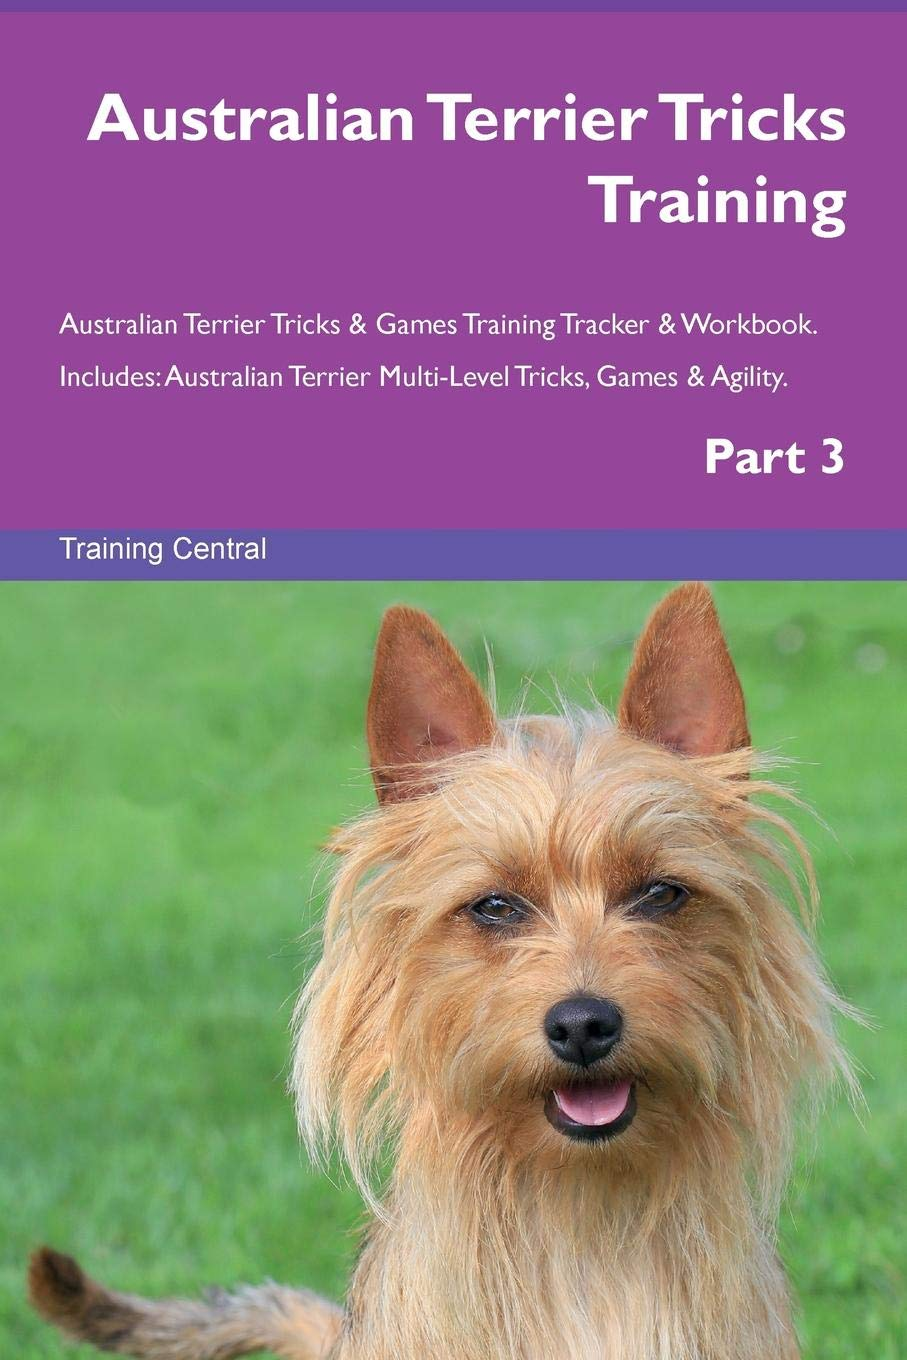 Australian Terrier Tricks Training Australian Terrier Tricks & Games Training Tracker & Workbook.  Includes: Australian Terrier Multi-Level Tricks, Games & Agility. Part 3